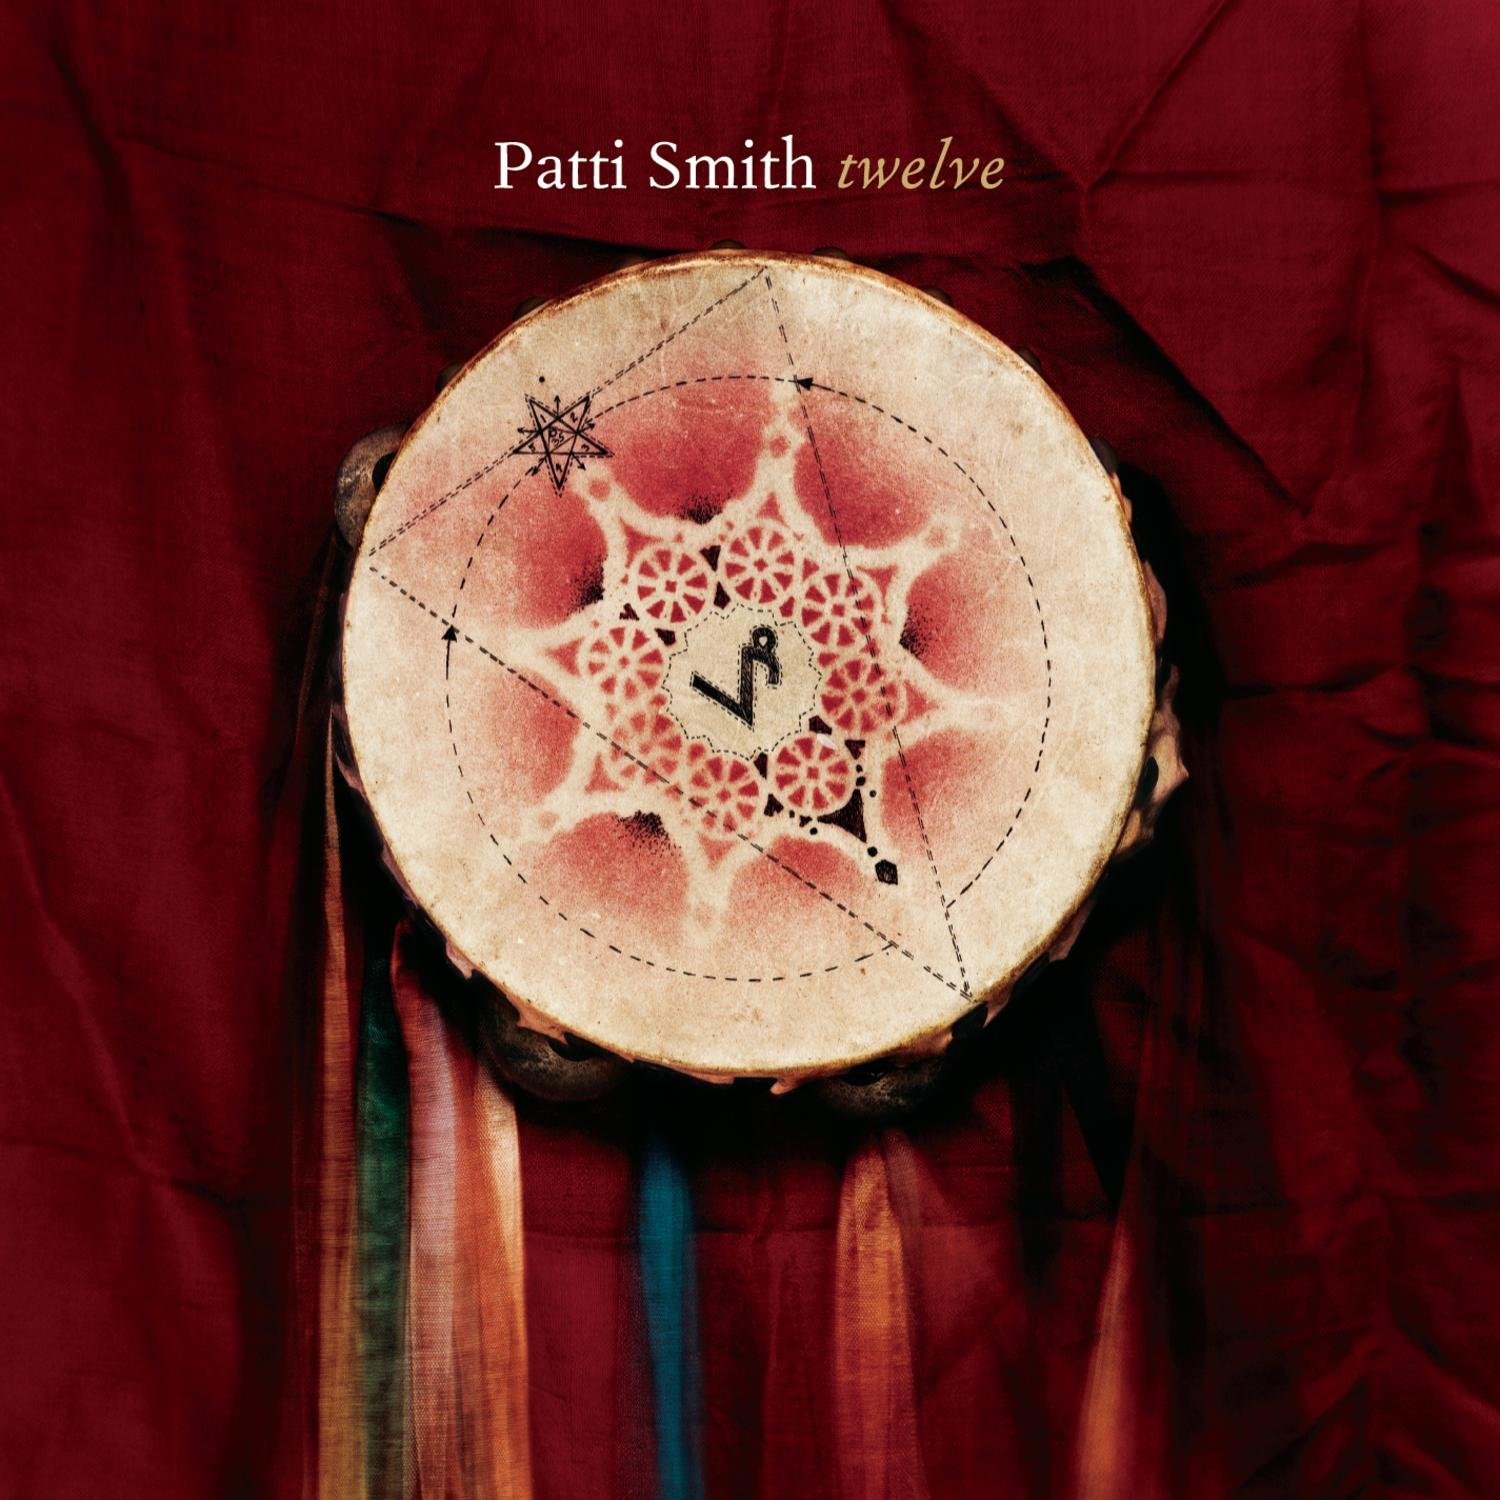 Patti Smith - Twelve - Amazoncom Music